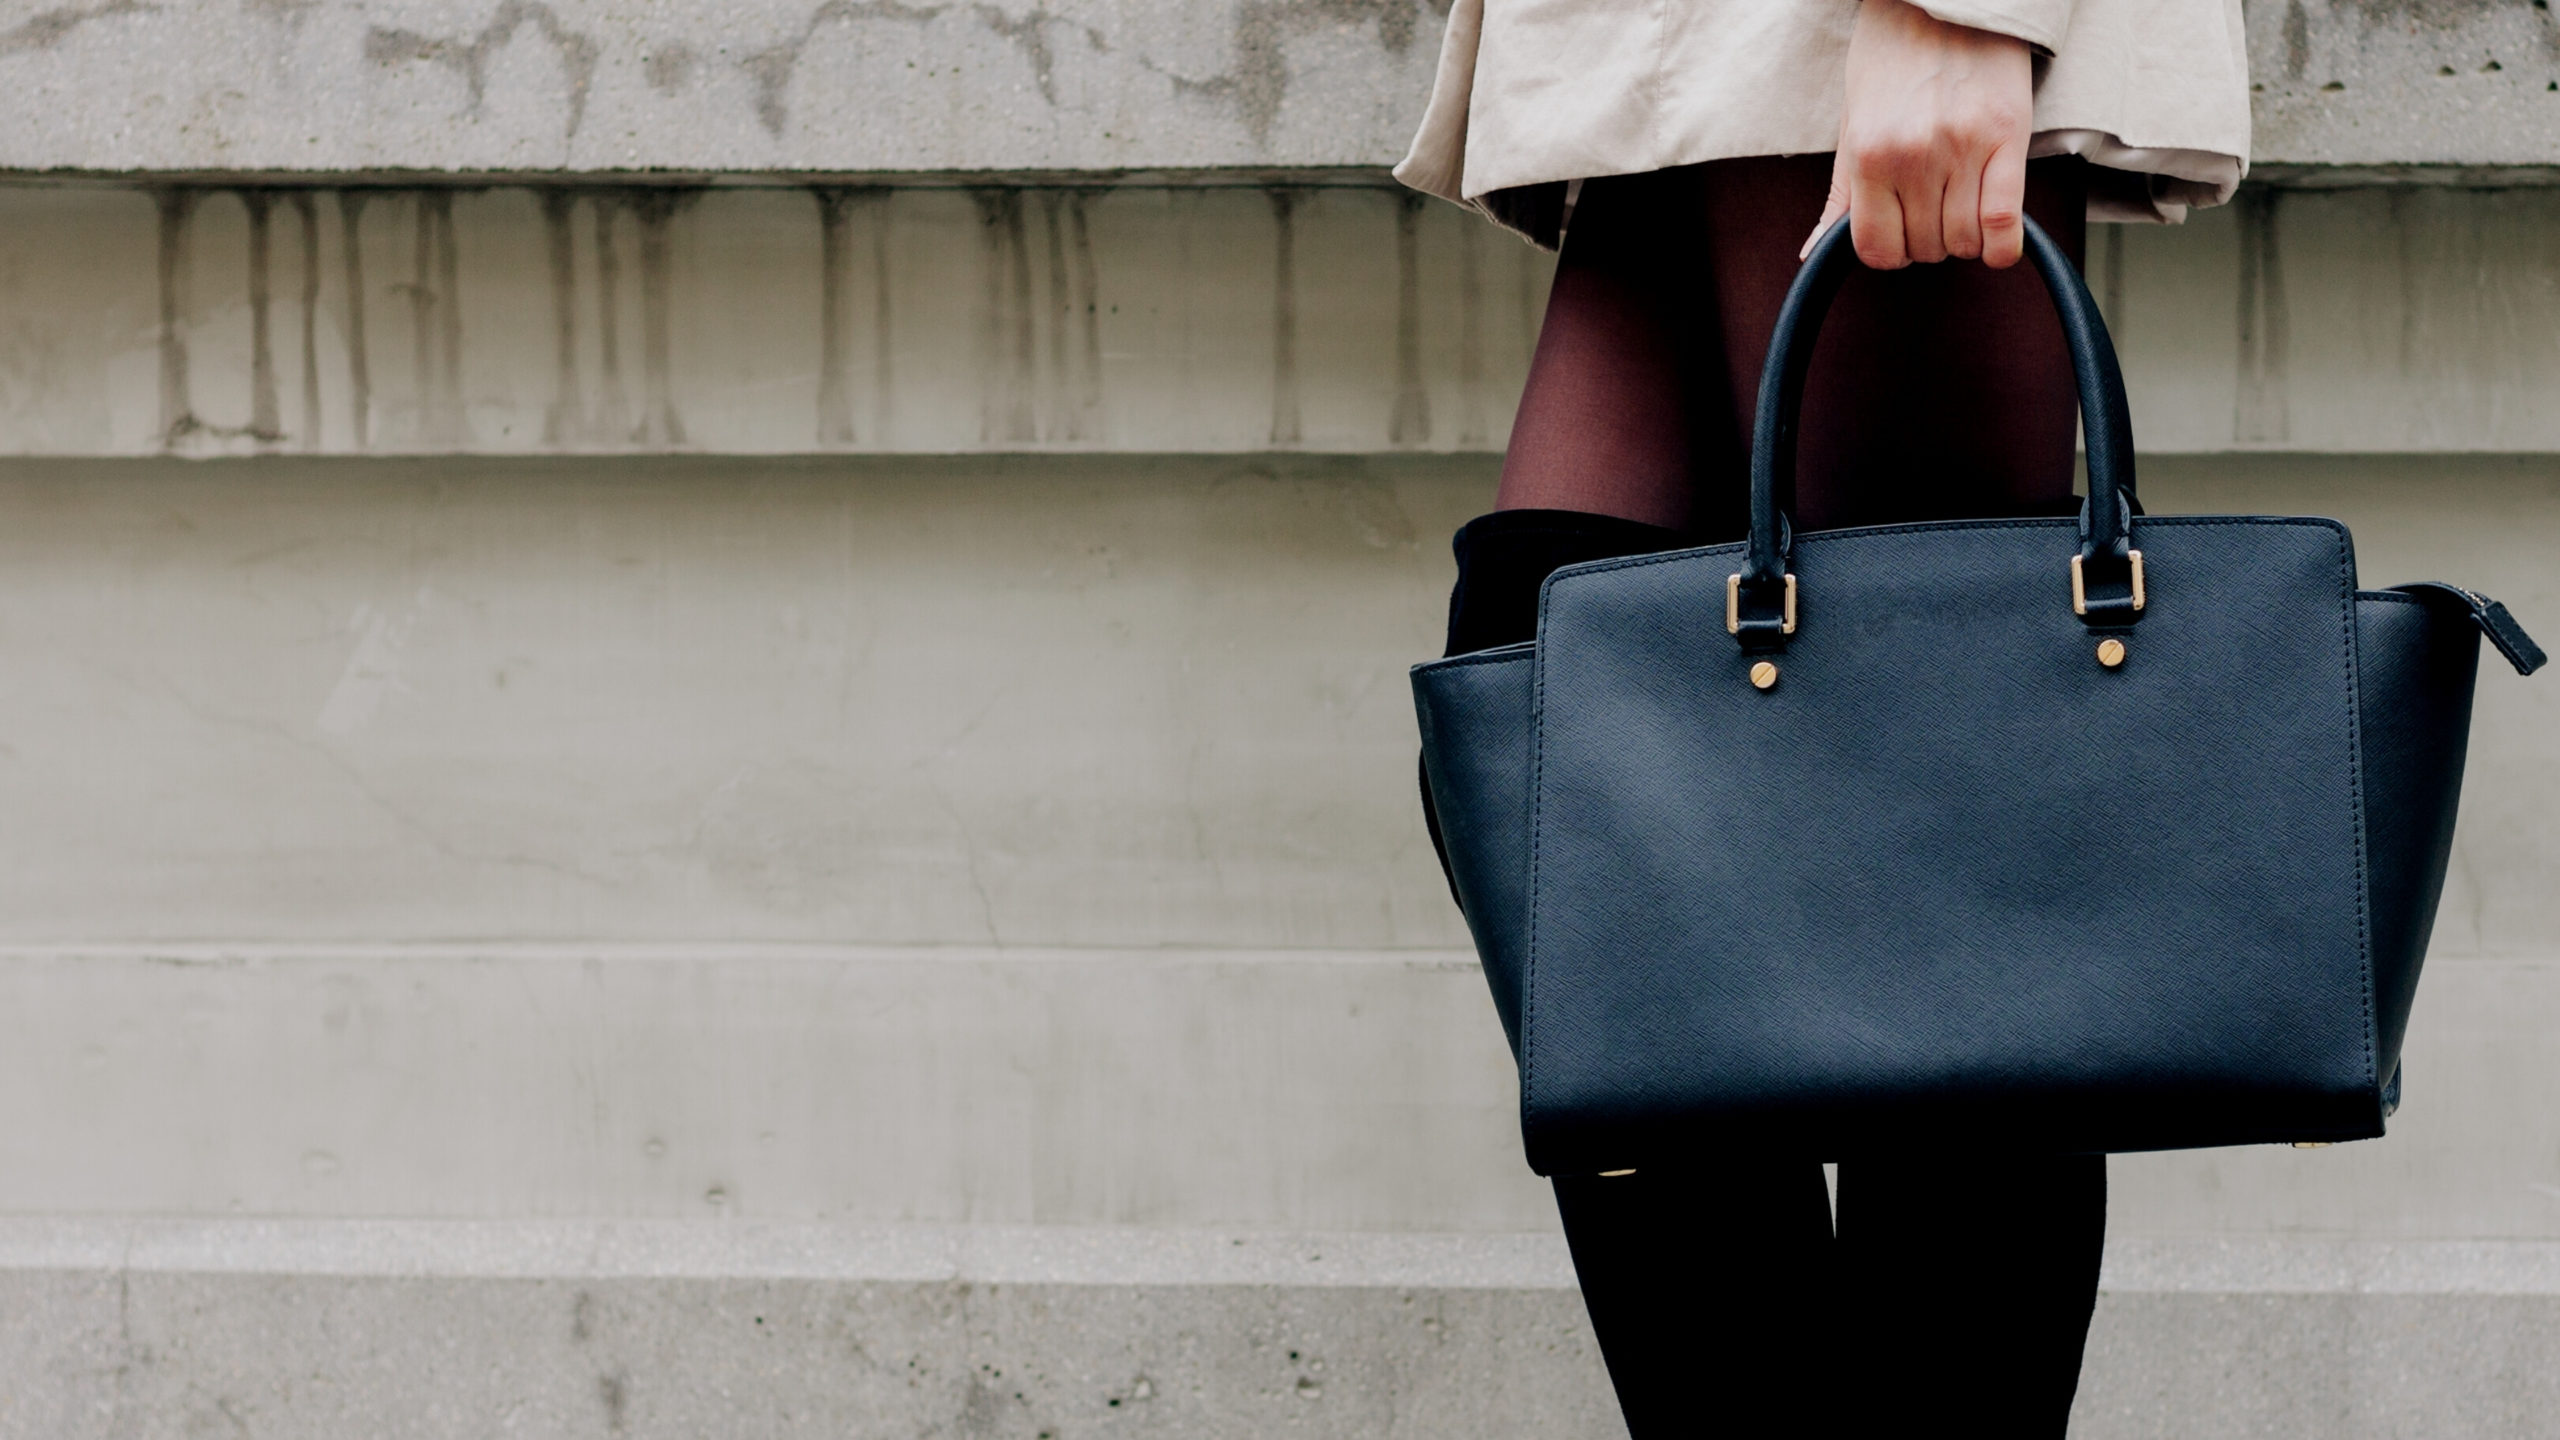 ZEN by Beepings, the GPS tracker for your bag